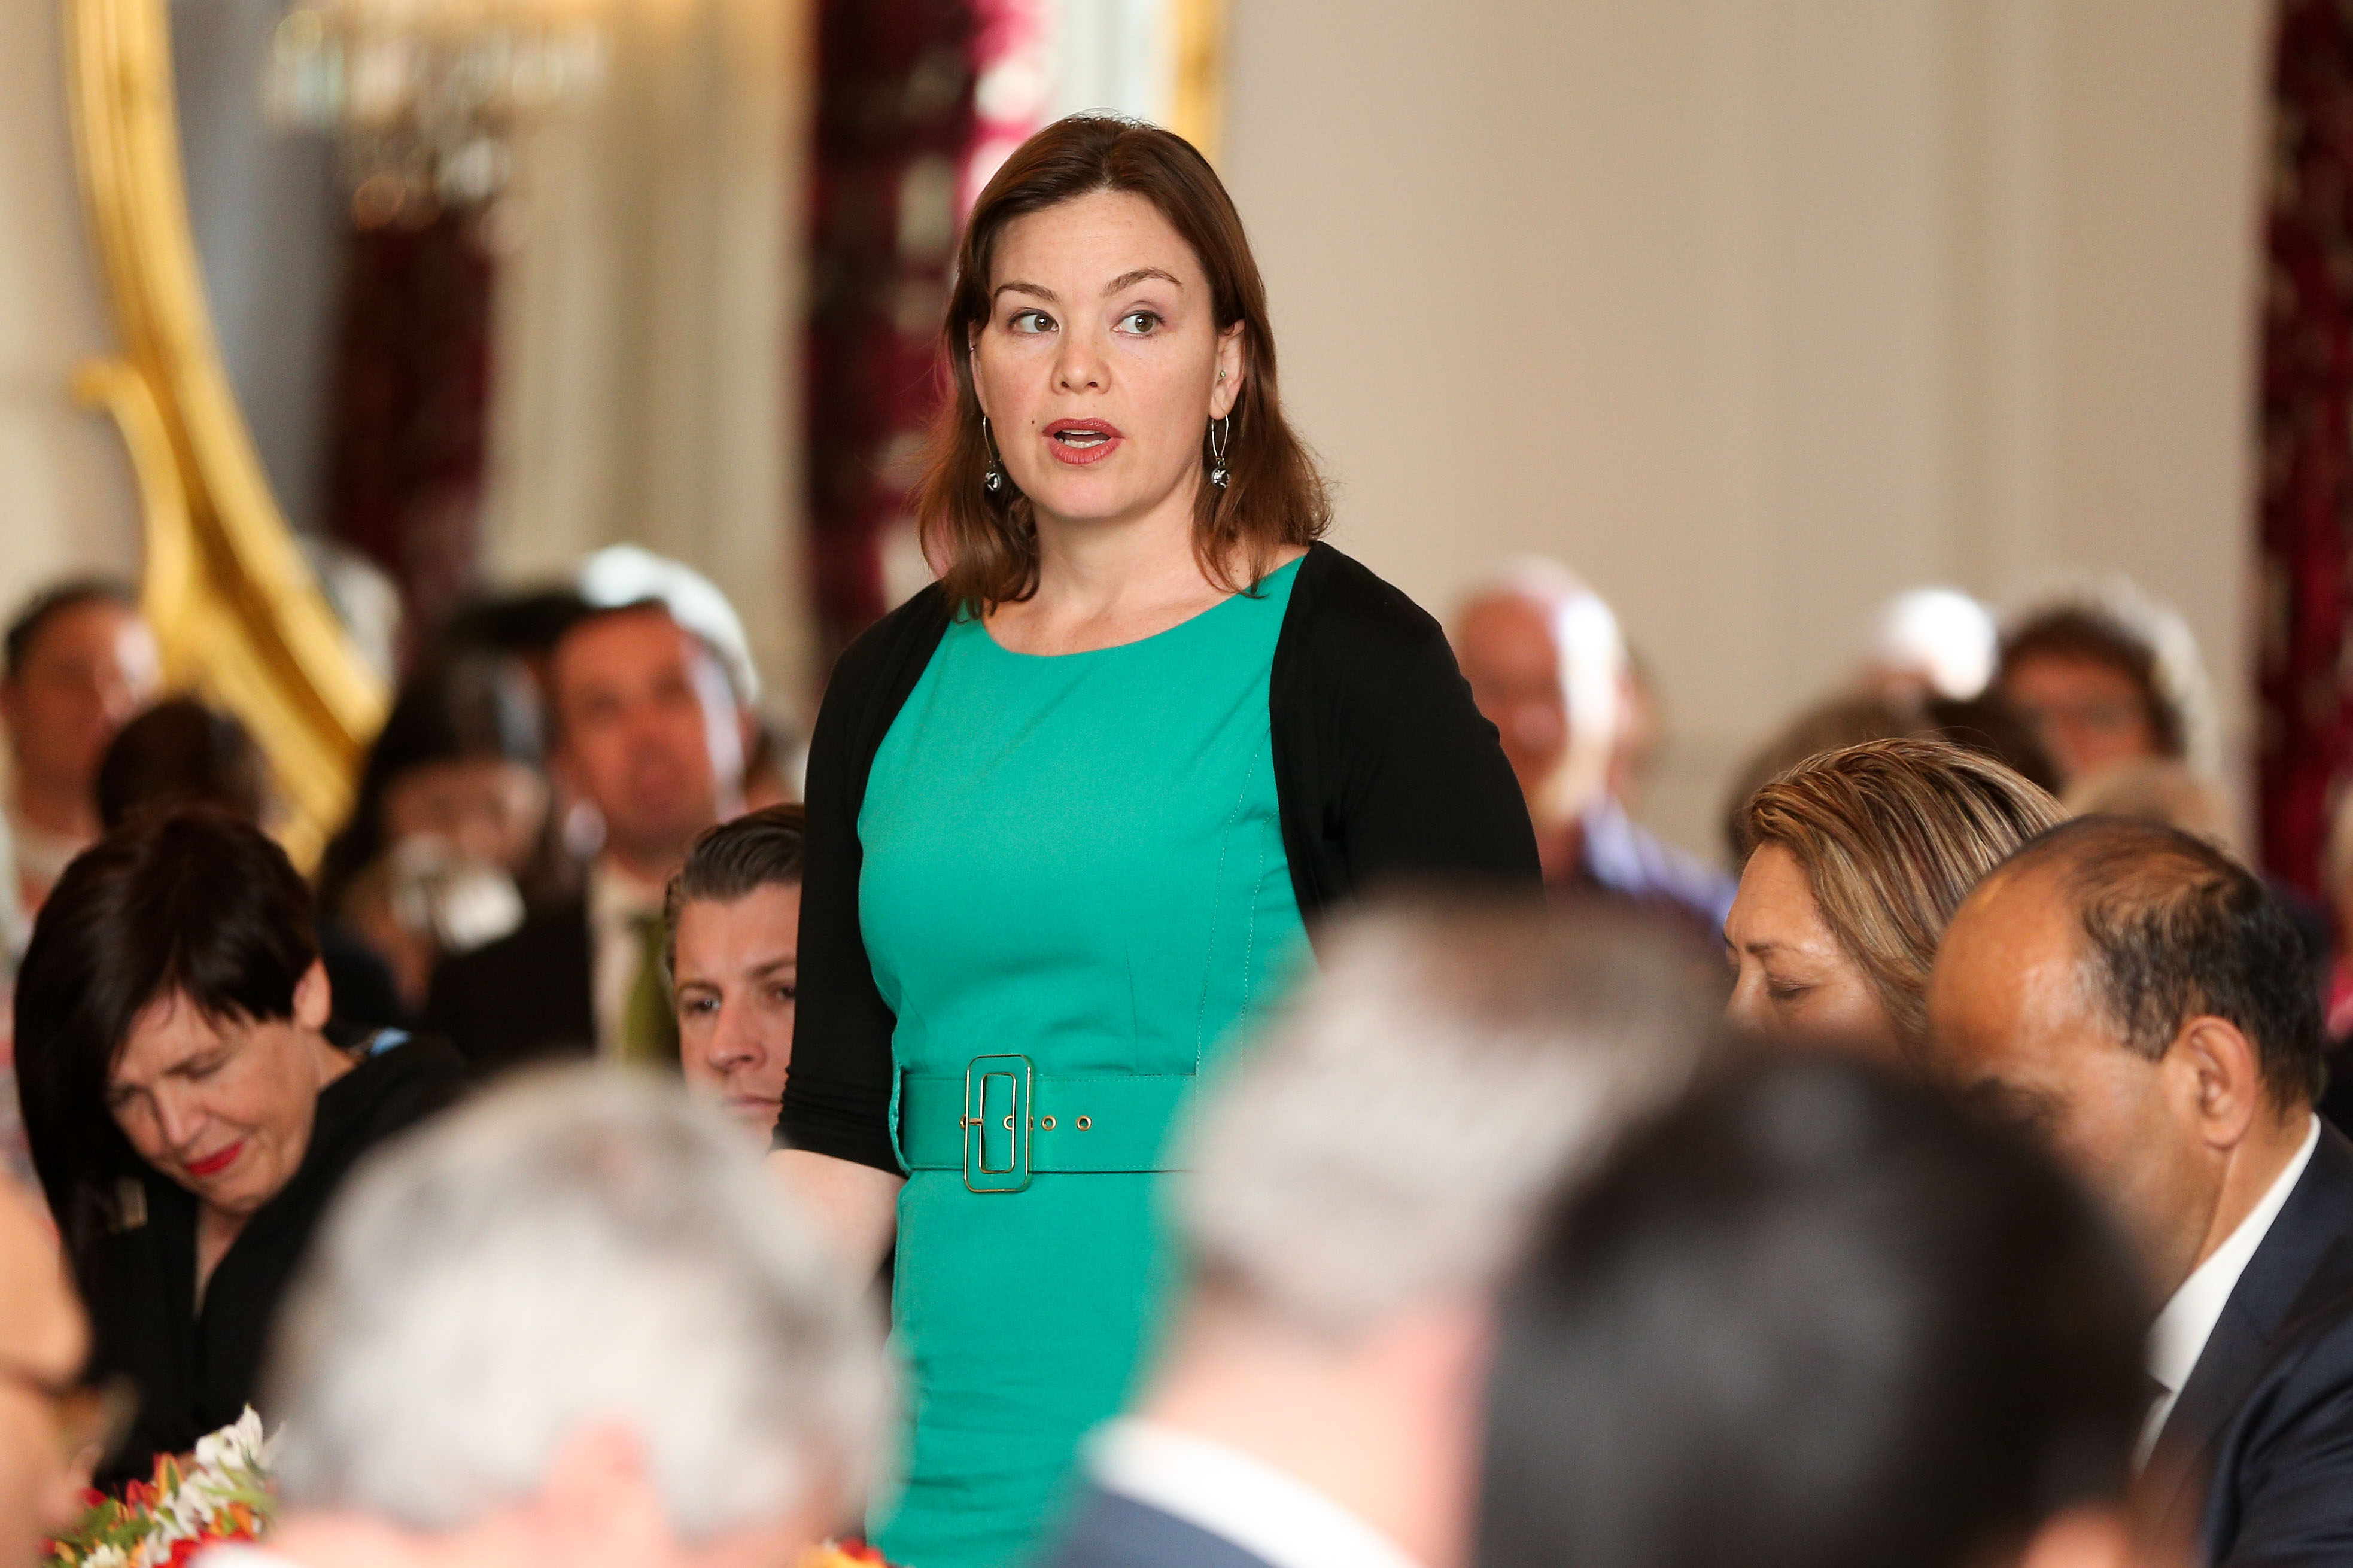 Green MP Julie Anne Genter takes an oath during a swearing-in ceremony at Government House in Wellington, New Zealand on Oct. 26, 2017.